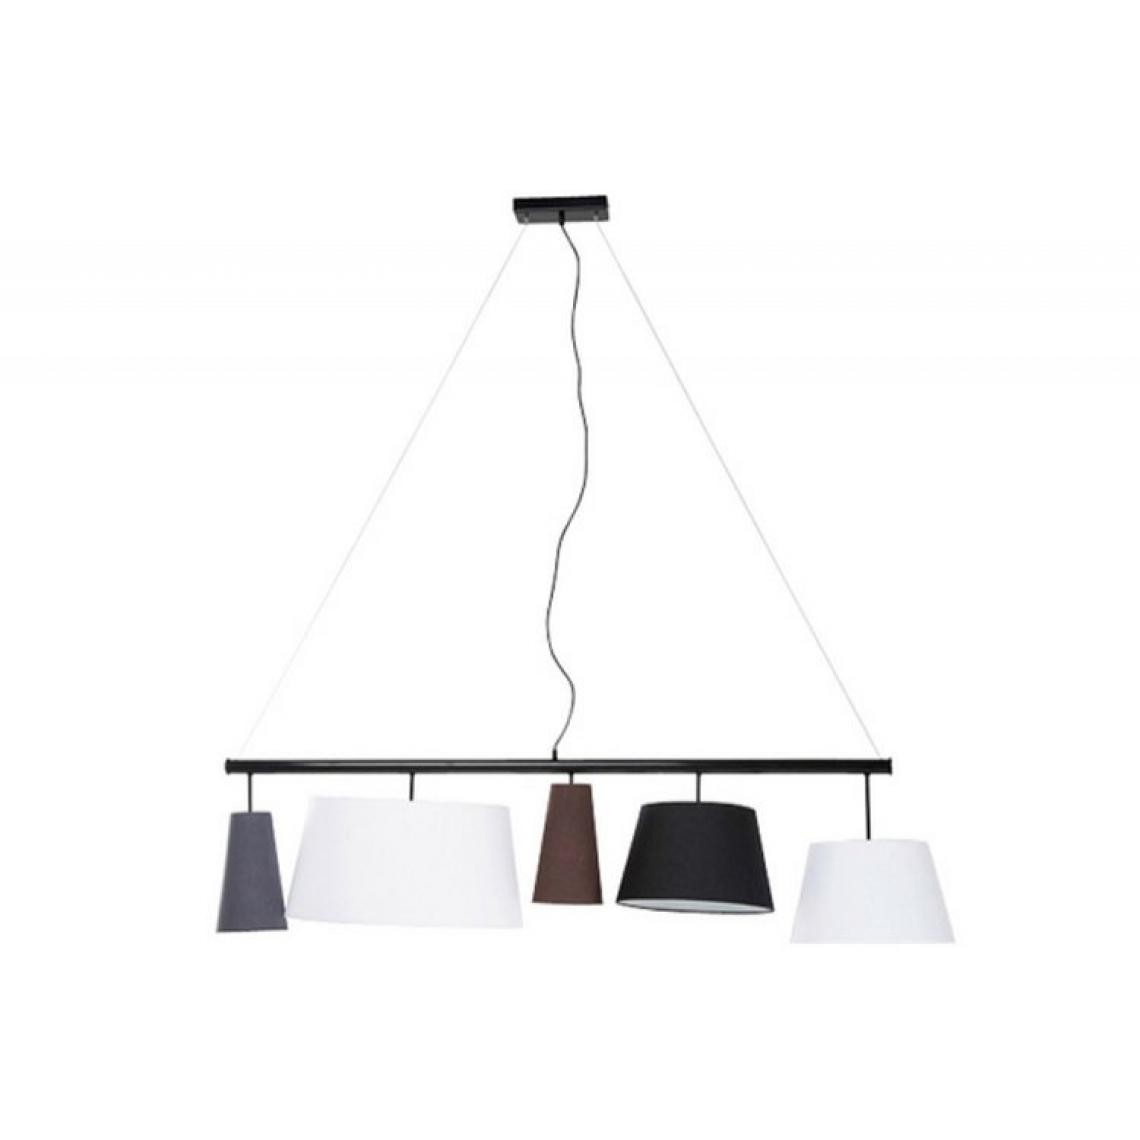 Et Abat Blanc Kare Parecchi3 Design Jour Marron Suspension Suisses ONyvm0w8n